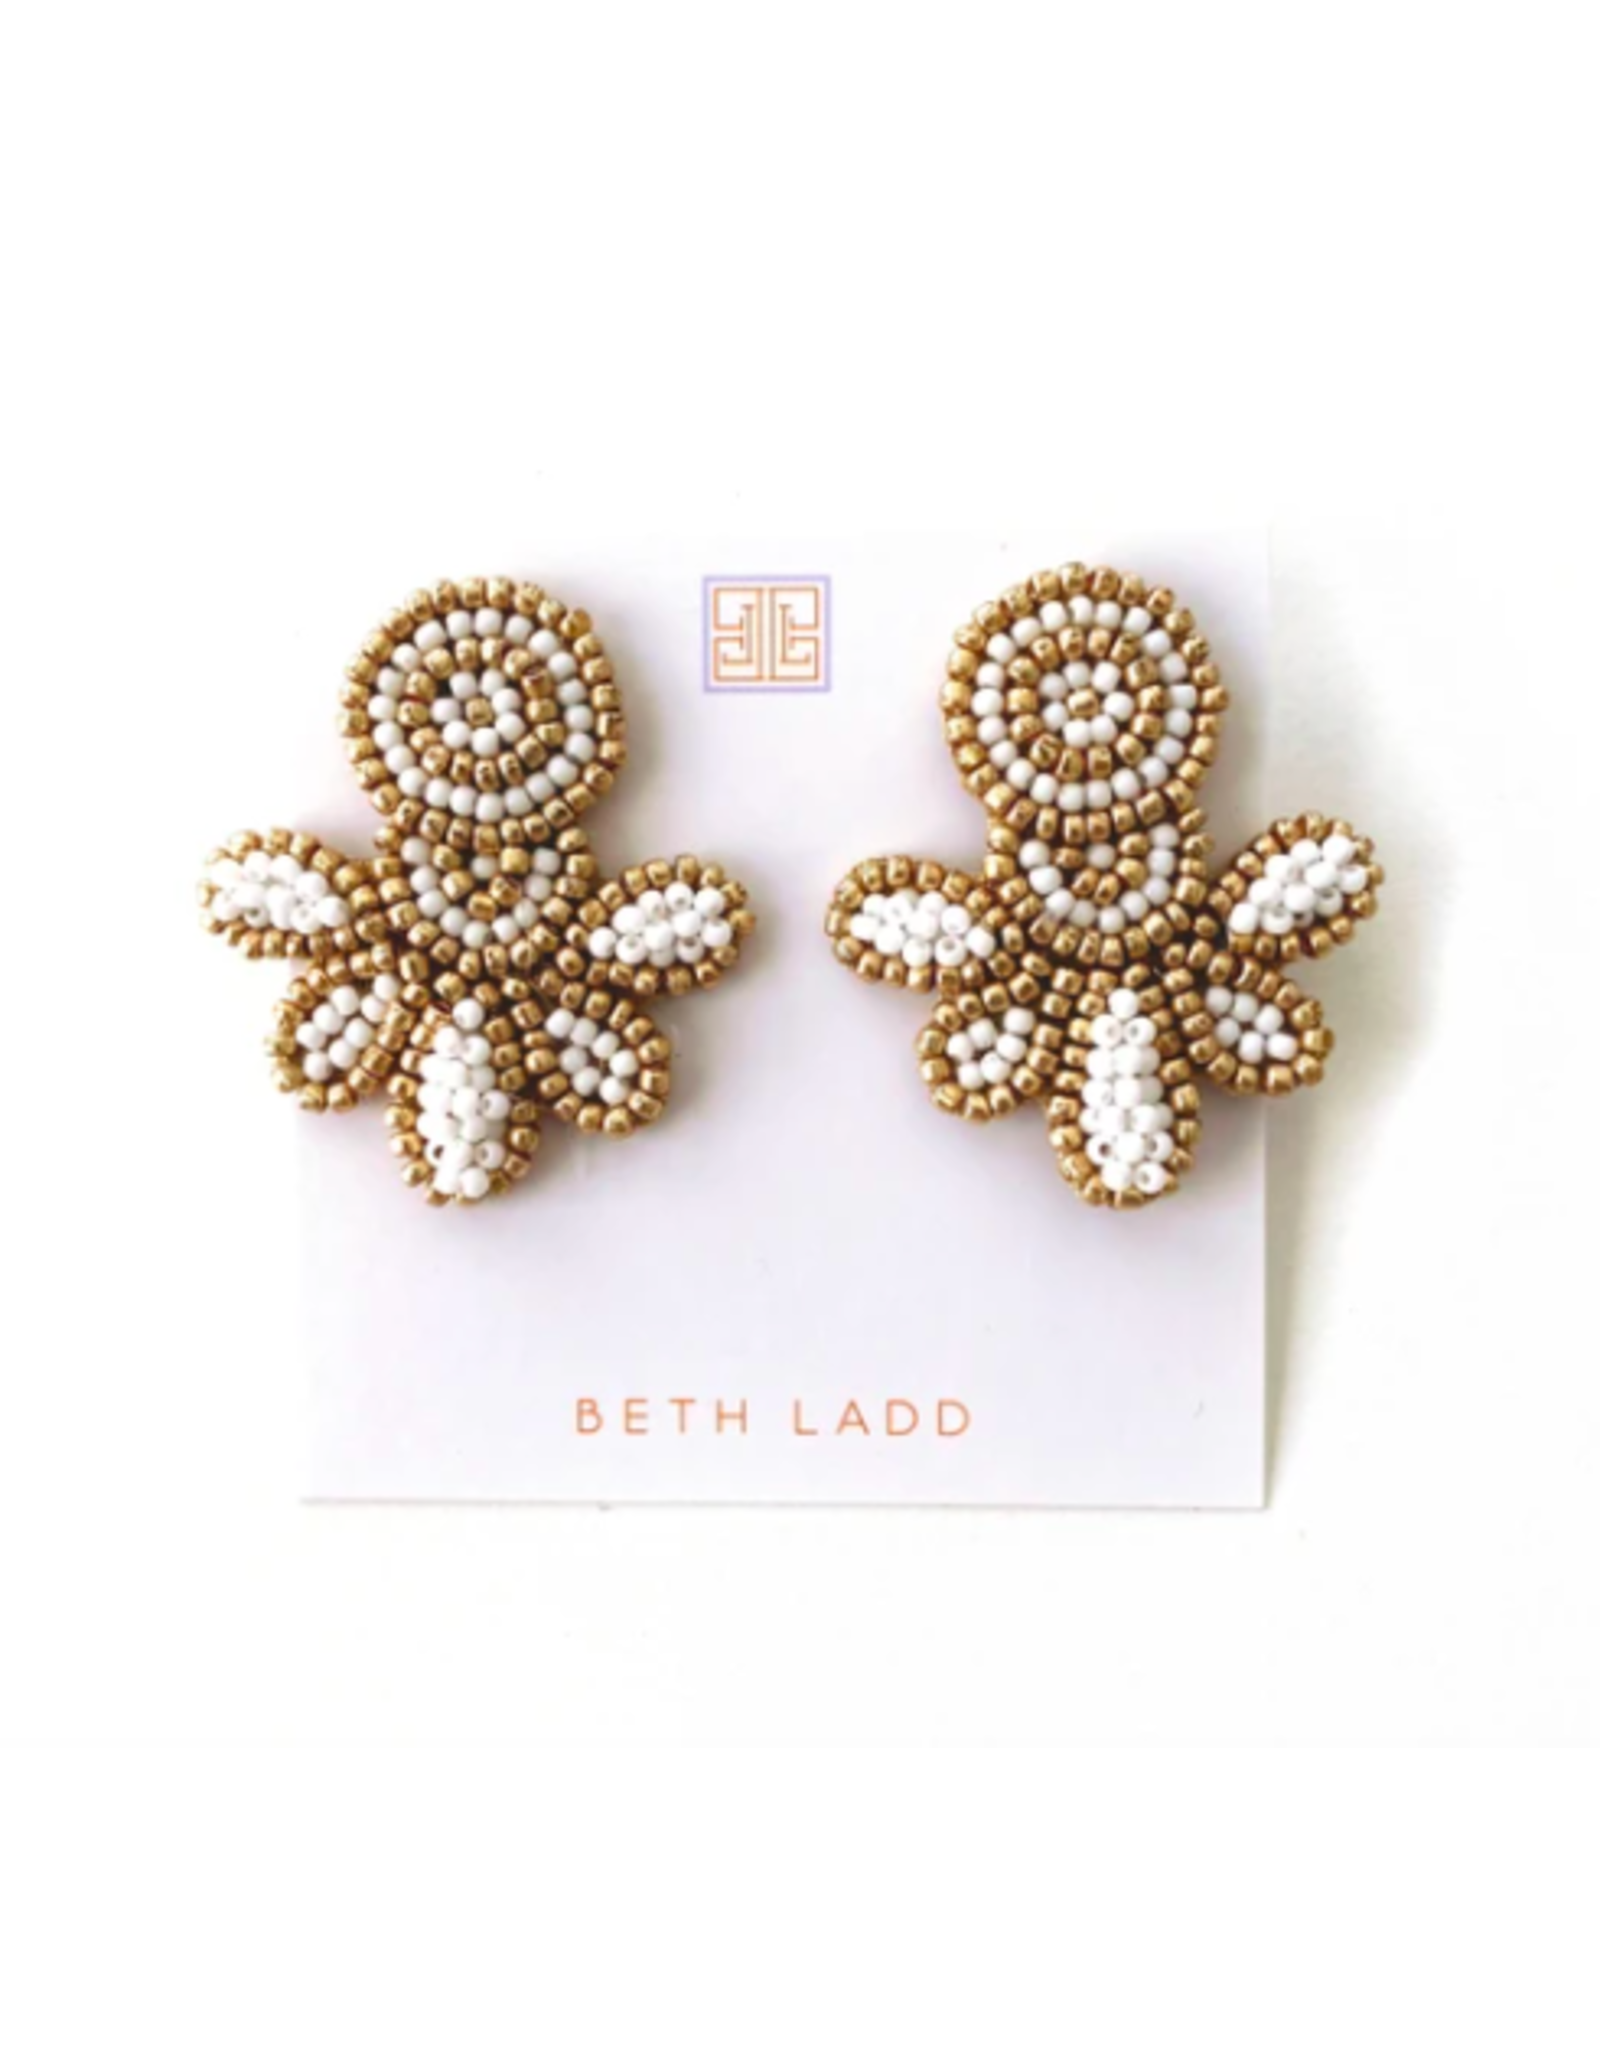 Beth Ladd Collection Love Studs in Gold and White by Beth Ladd